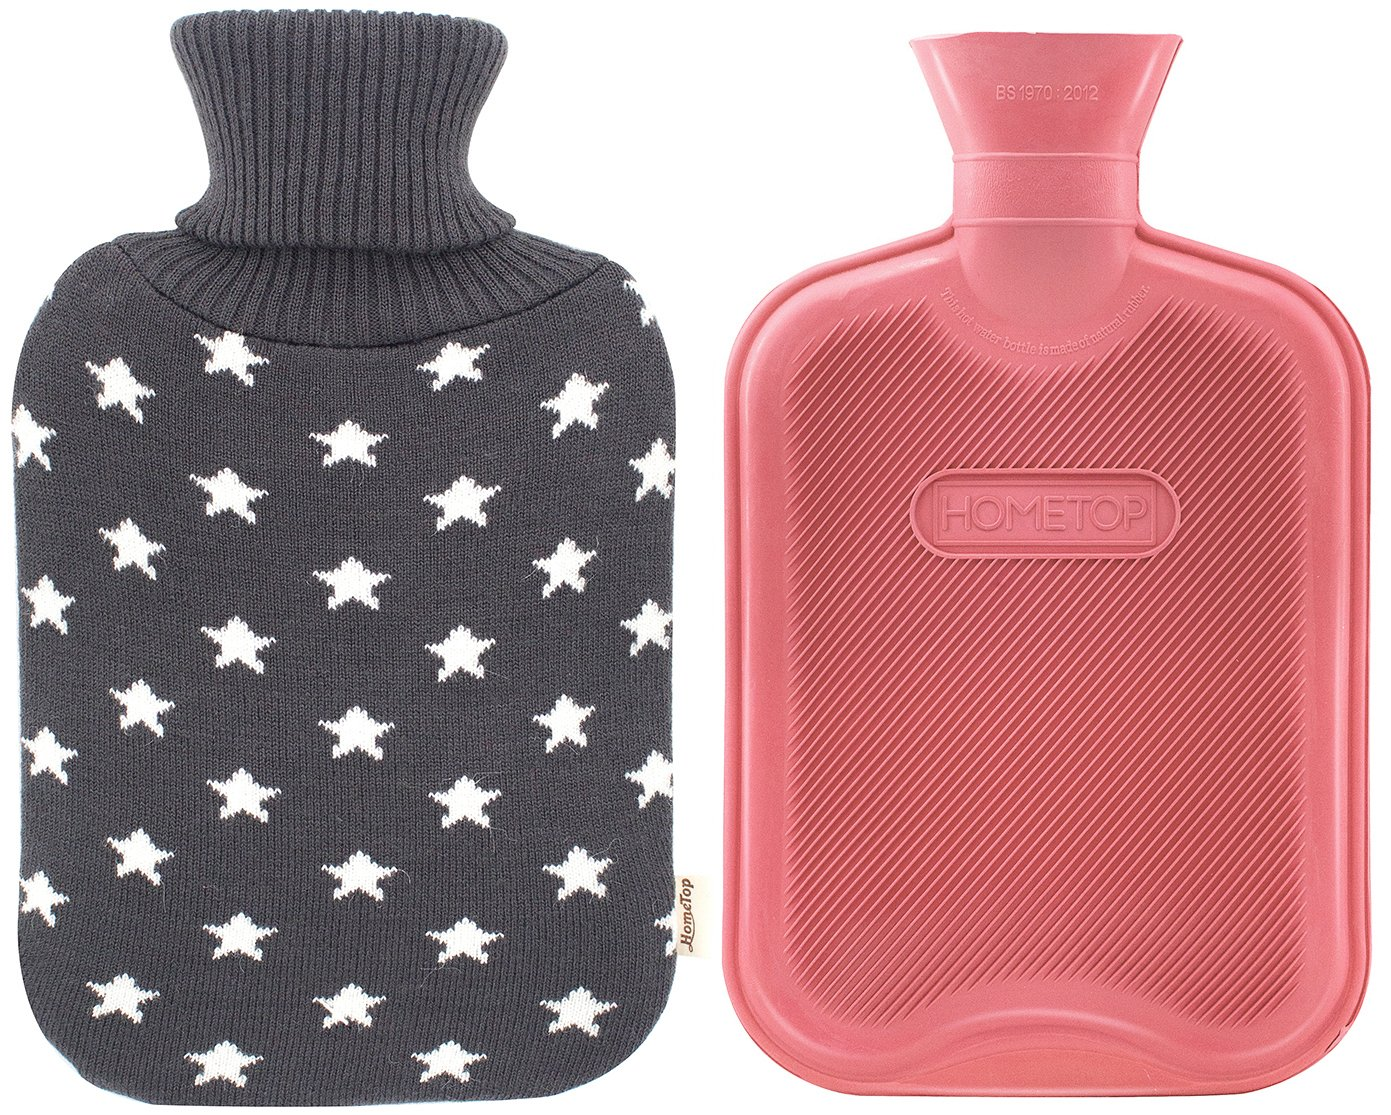 Premium Classic Rubber Hot Water Bottle and Star Print Knit Cover (2L, Dark Gray)